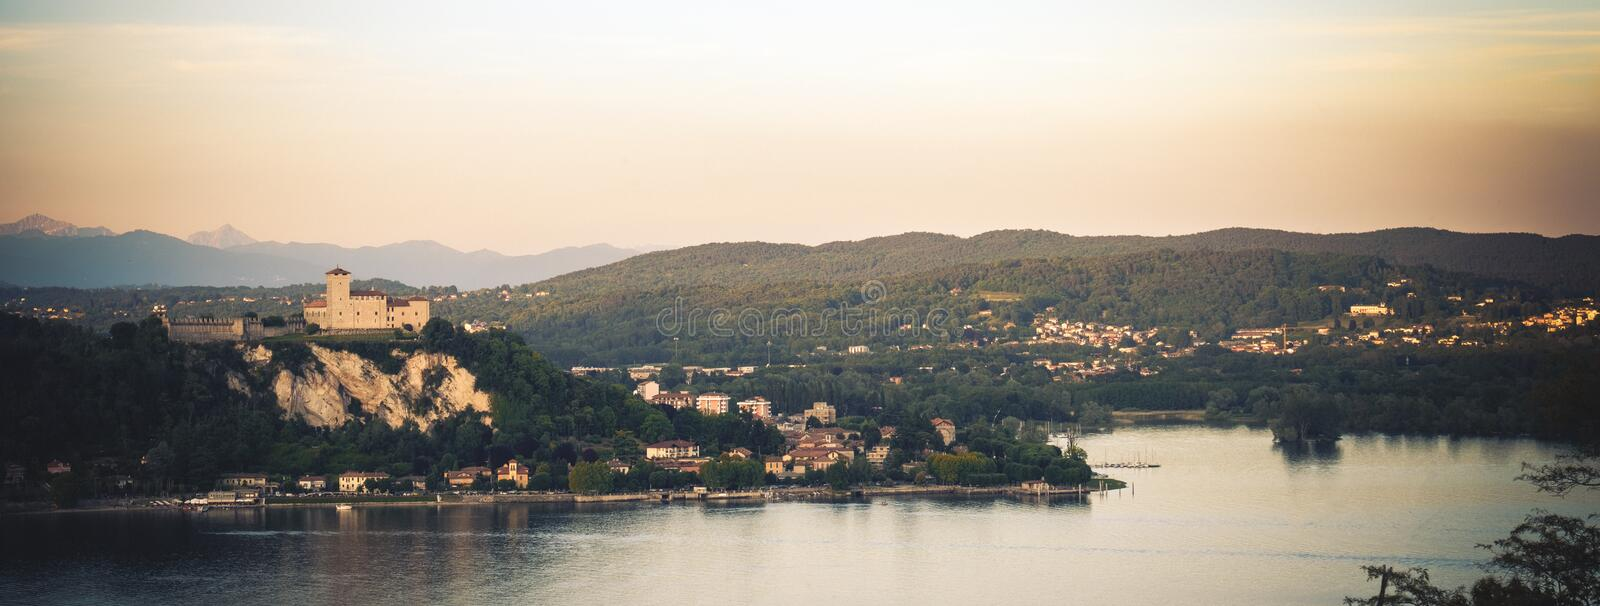 Rocca di Angera castle aerial Lake Maggiore at sunset Lombardy region Italy.  royalty free stock images